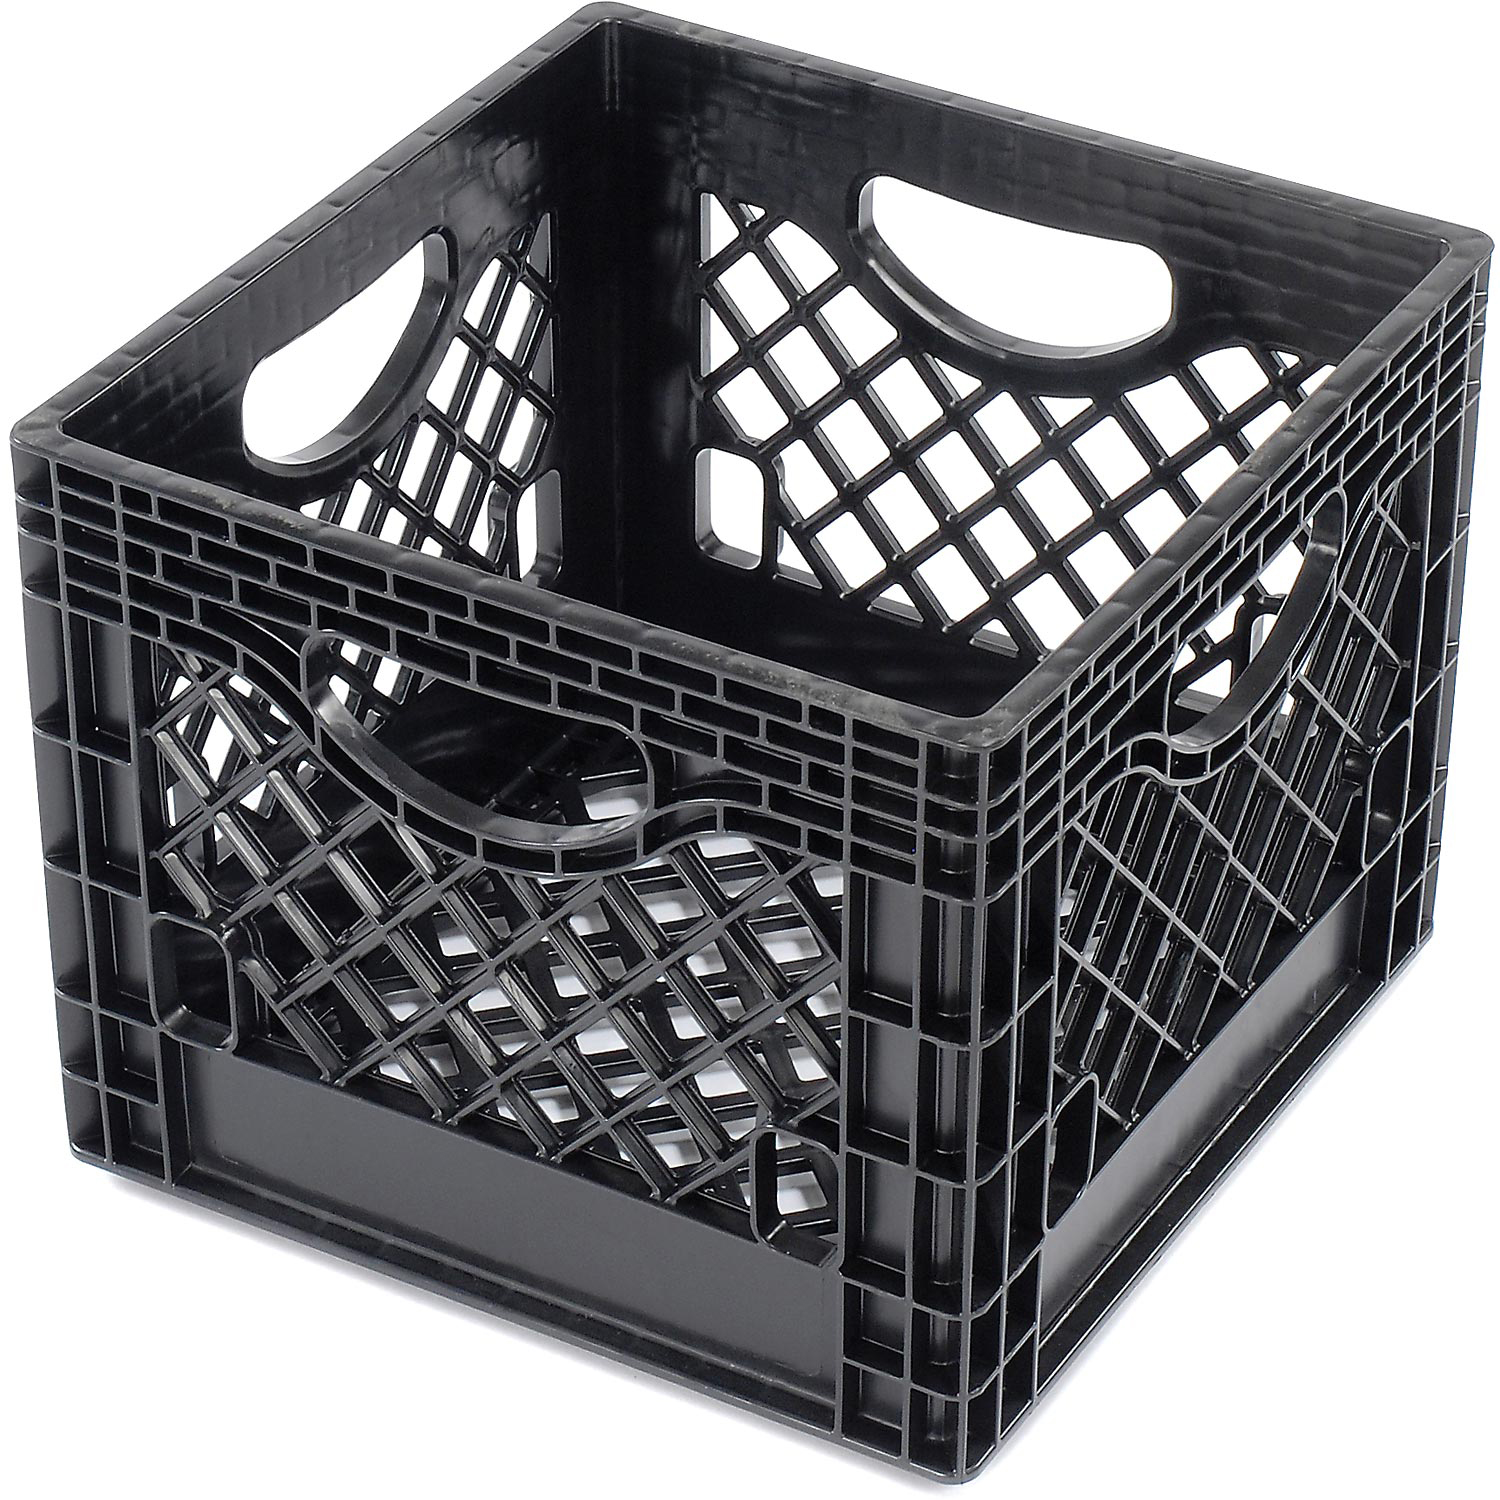 "Dairy Milk Crate w/ Mesh Sides & Base, Black, 13""L X 13""W X 11""H, Lot of 1"